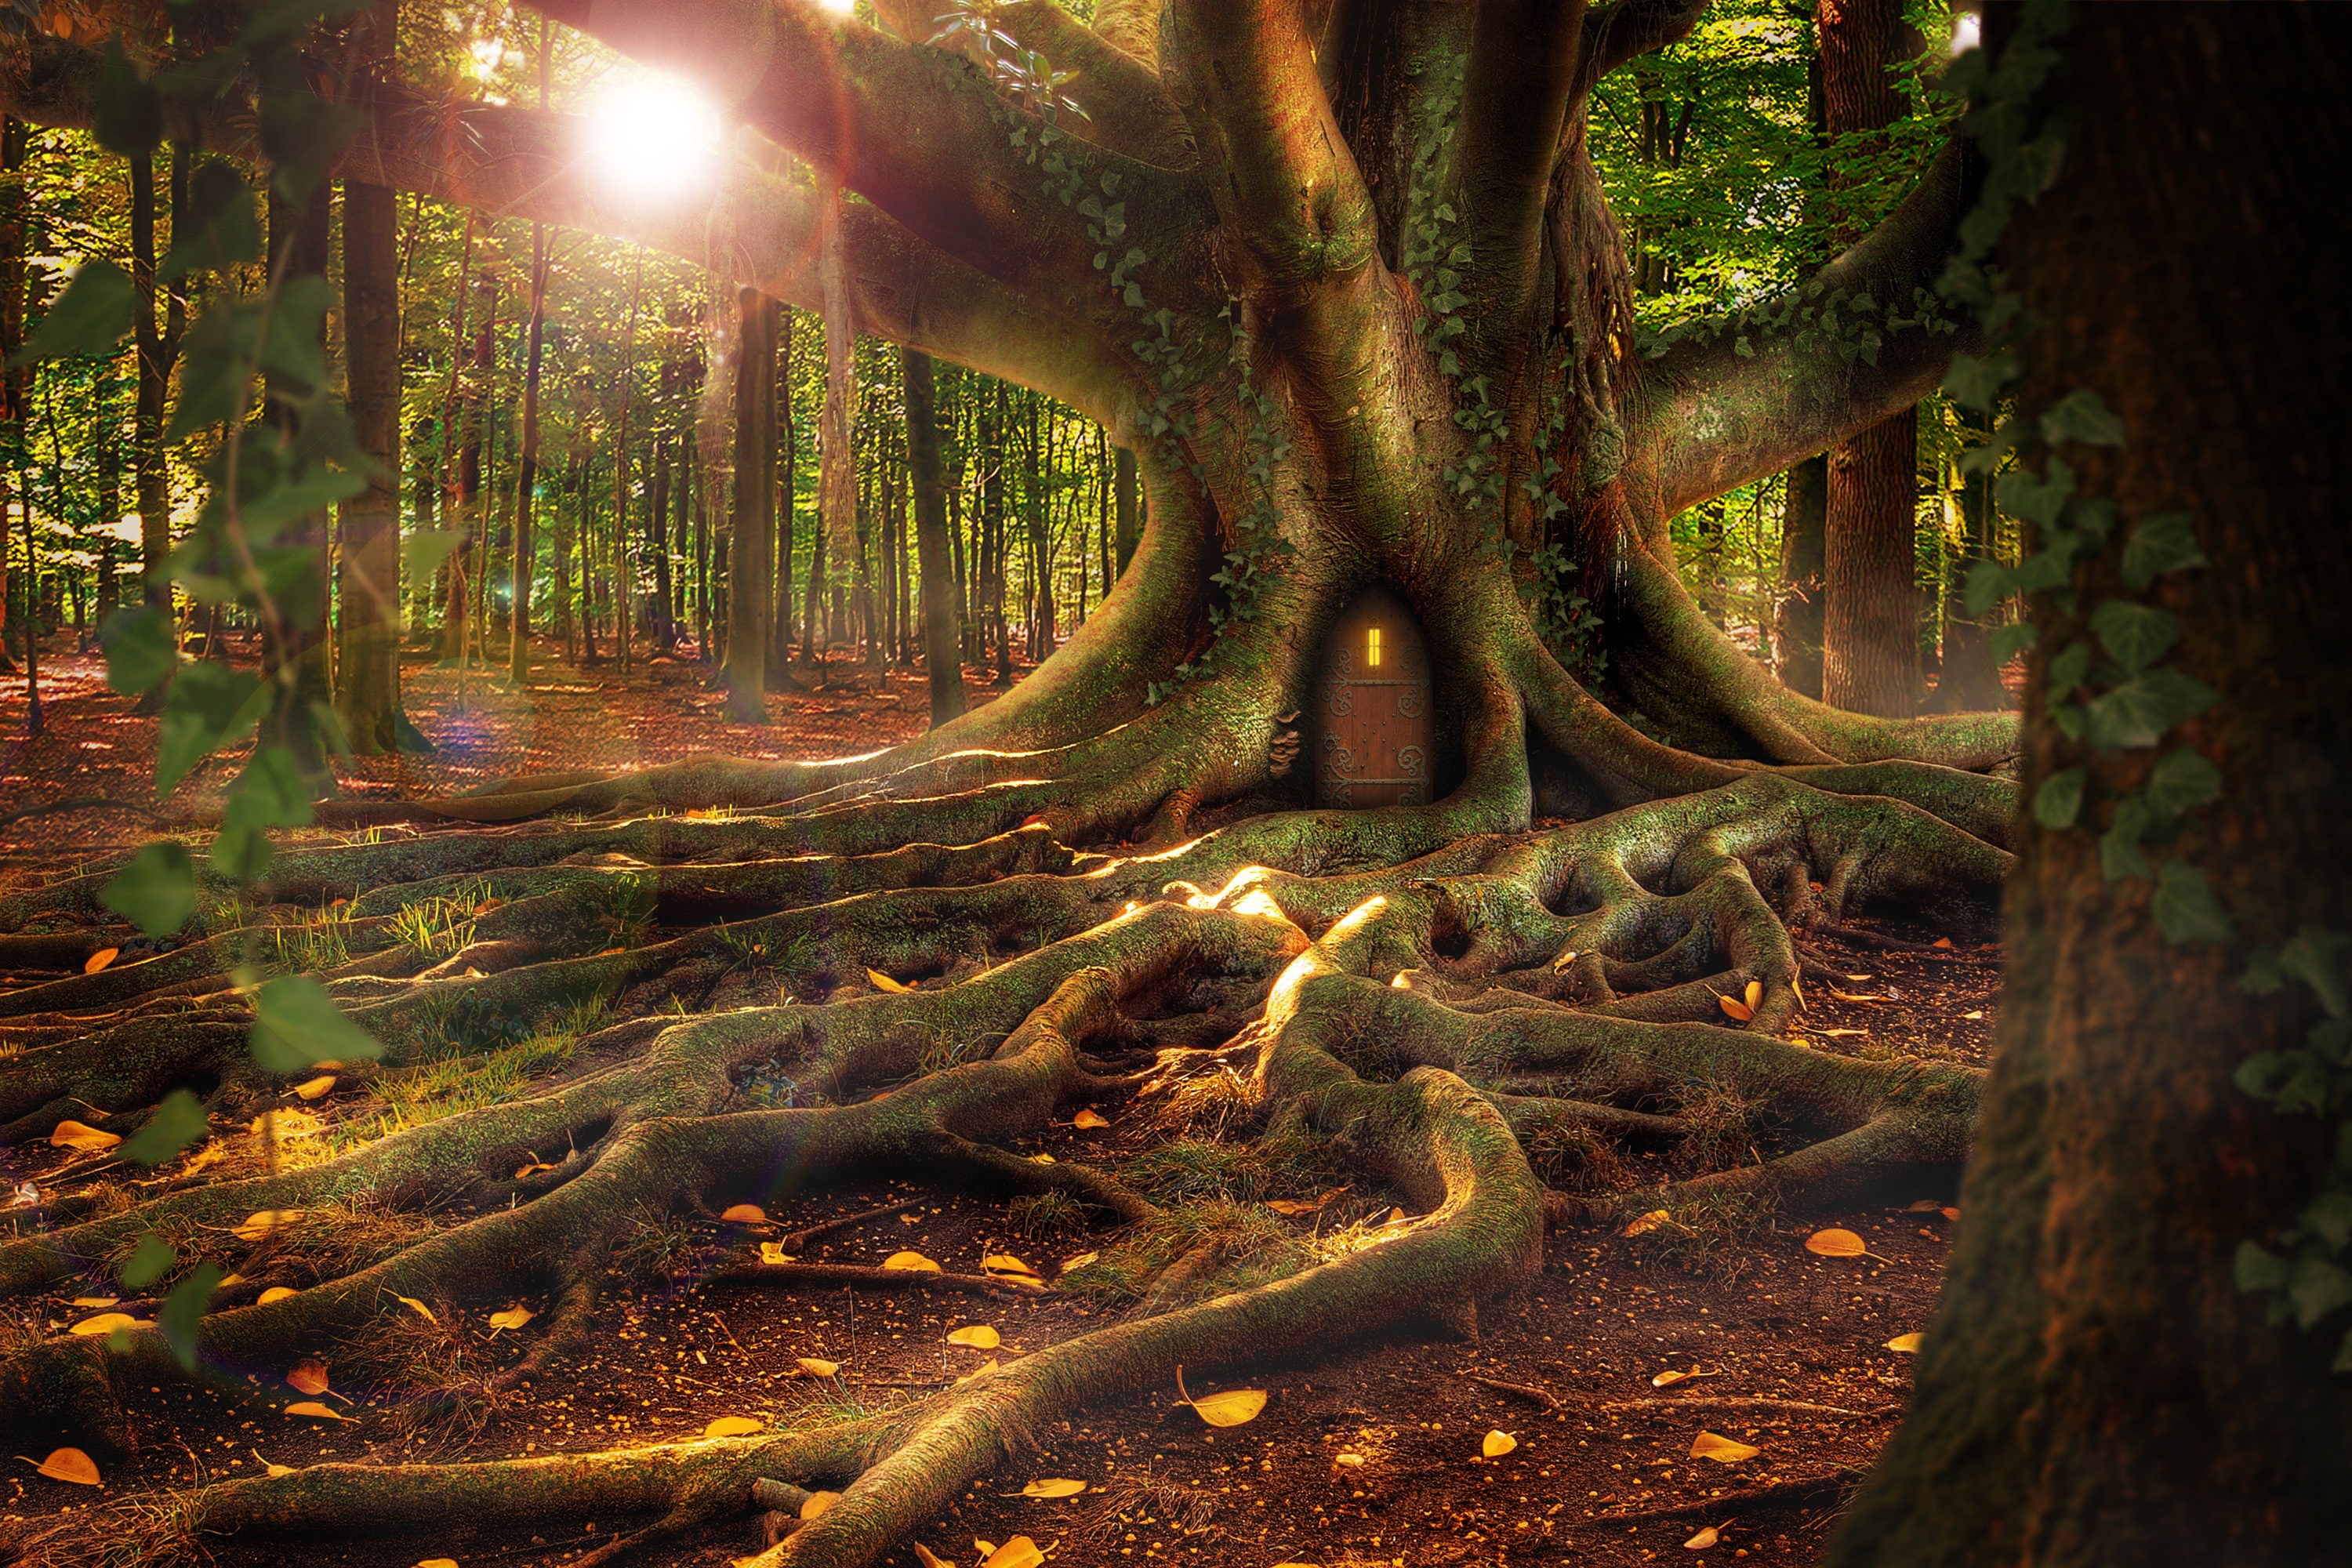 88679 download wallpaper Fantasy, Small House, Lodge, Forest, Wood, Tree, Roots screensavers and pictures for free